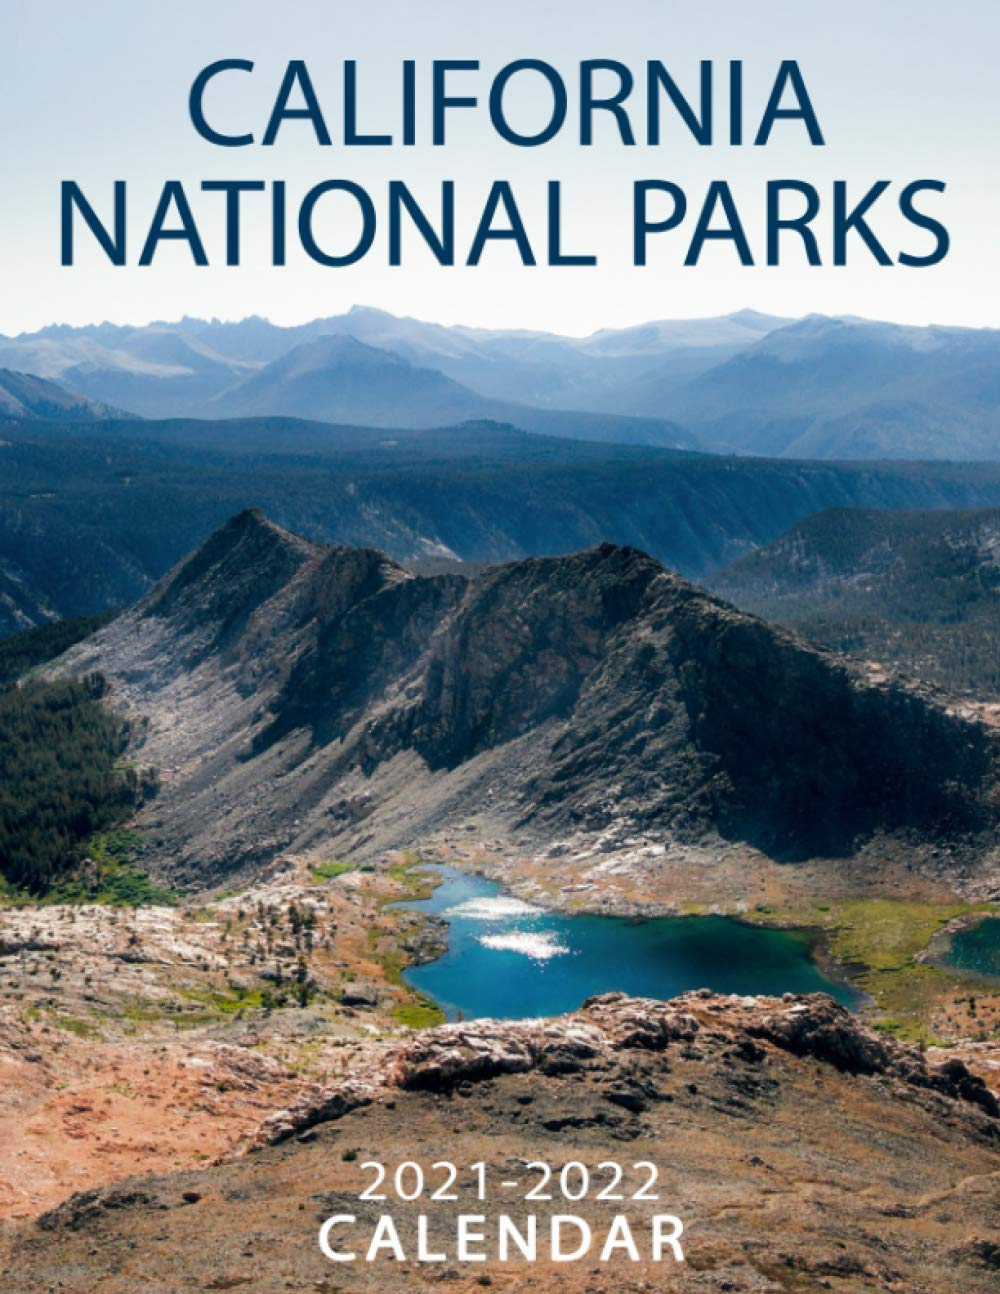 Image for California National Parks: 2021 – 2022 Calendar of Nature, Country, University – 18 months – 8.5 x 11 Inch High Quality Images